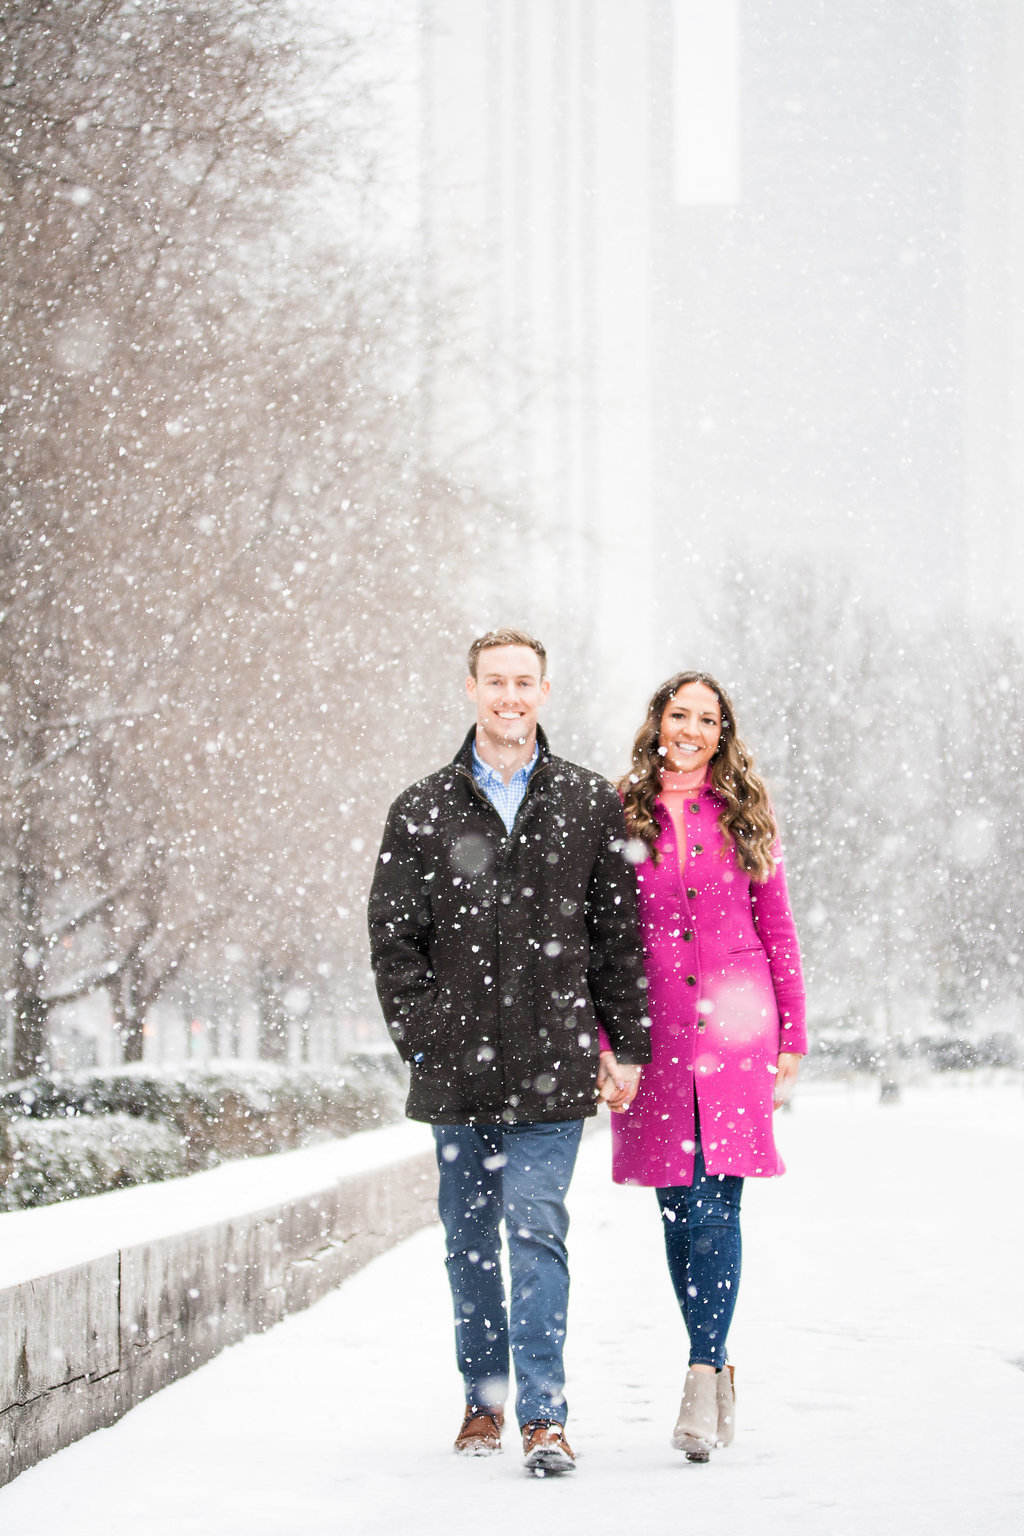 Millennium Park Chicago Illinois Winter Engagement Photographer Taylor Ingles 15